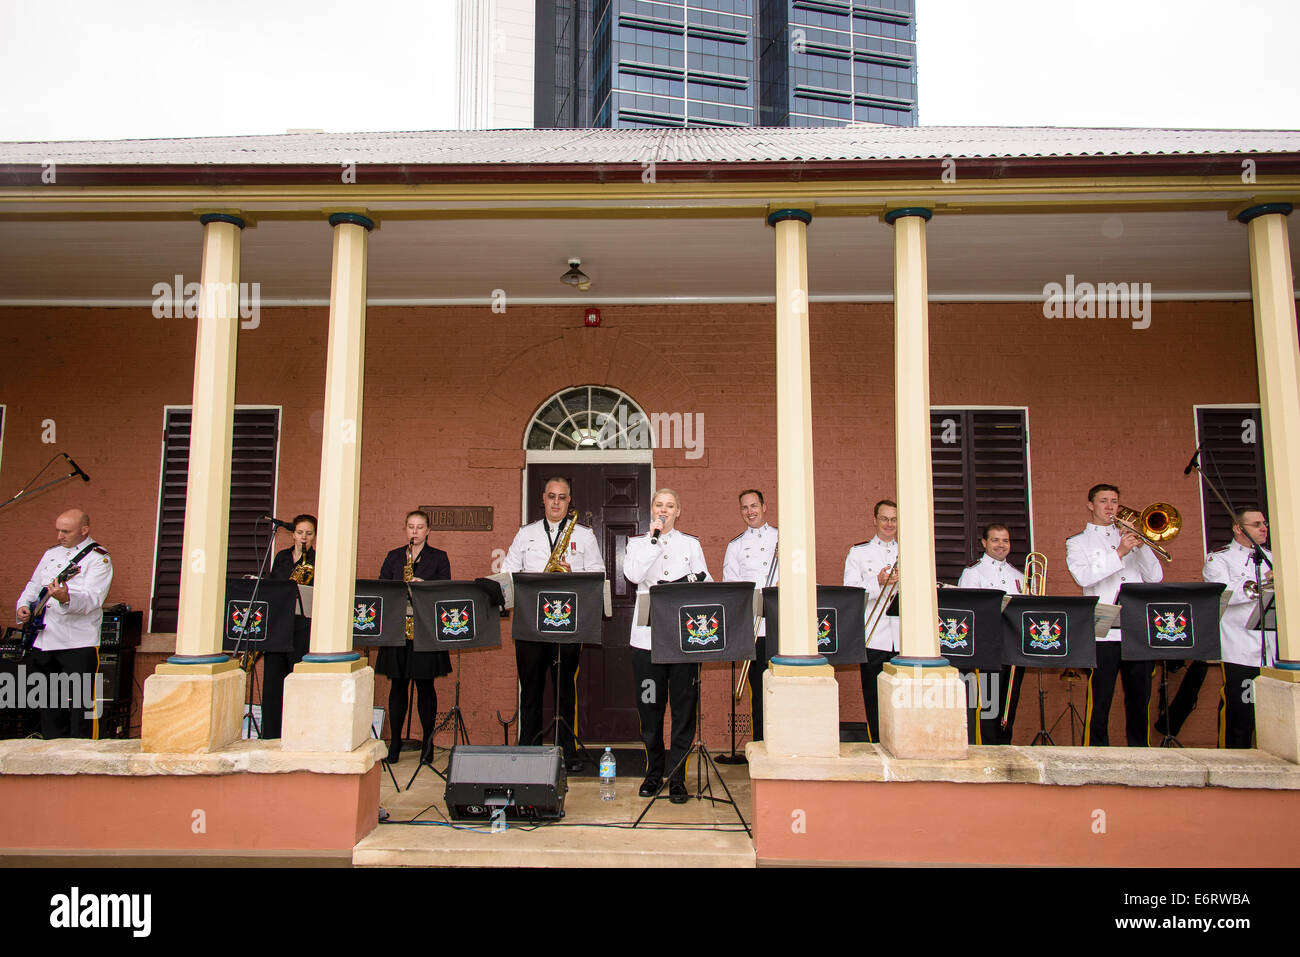 .Royal NSW Lancers Band plays during the Lancer Barracks Open Day in Parramatta. - Stock Image